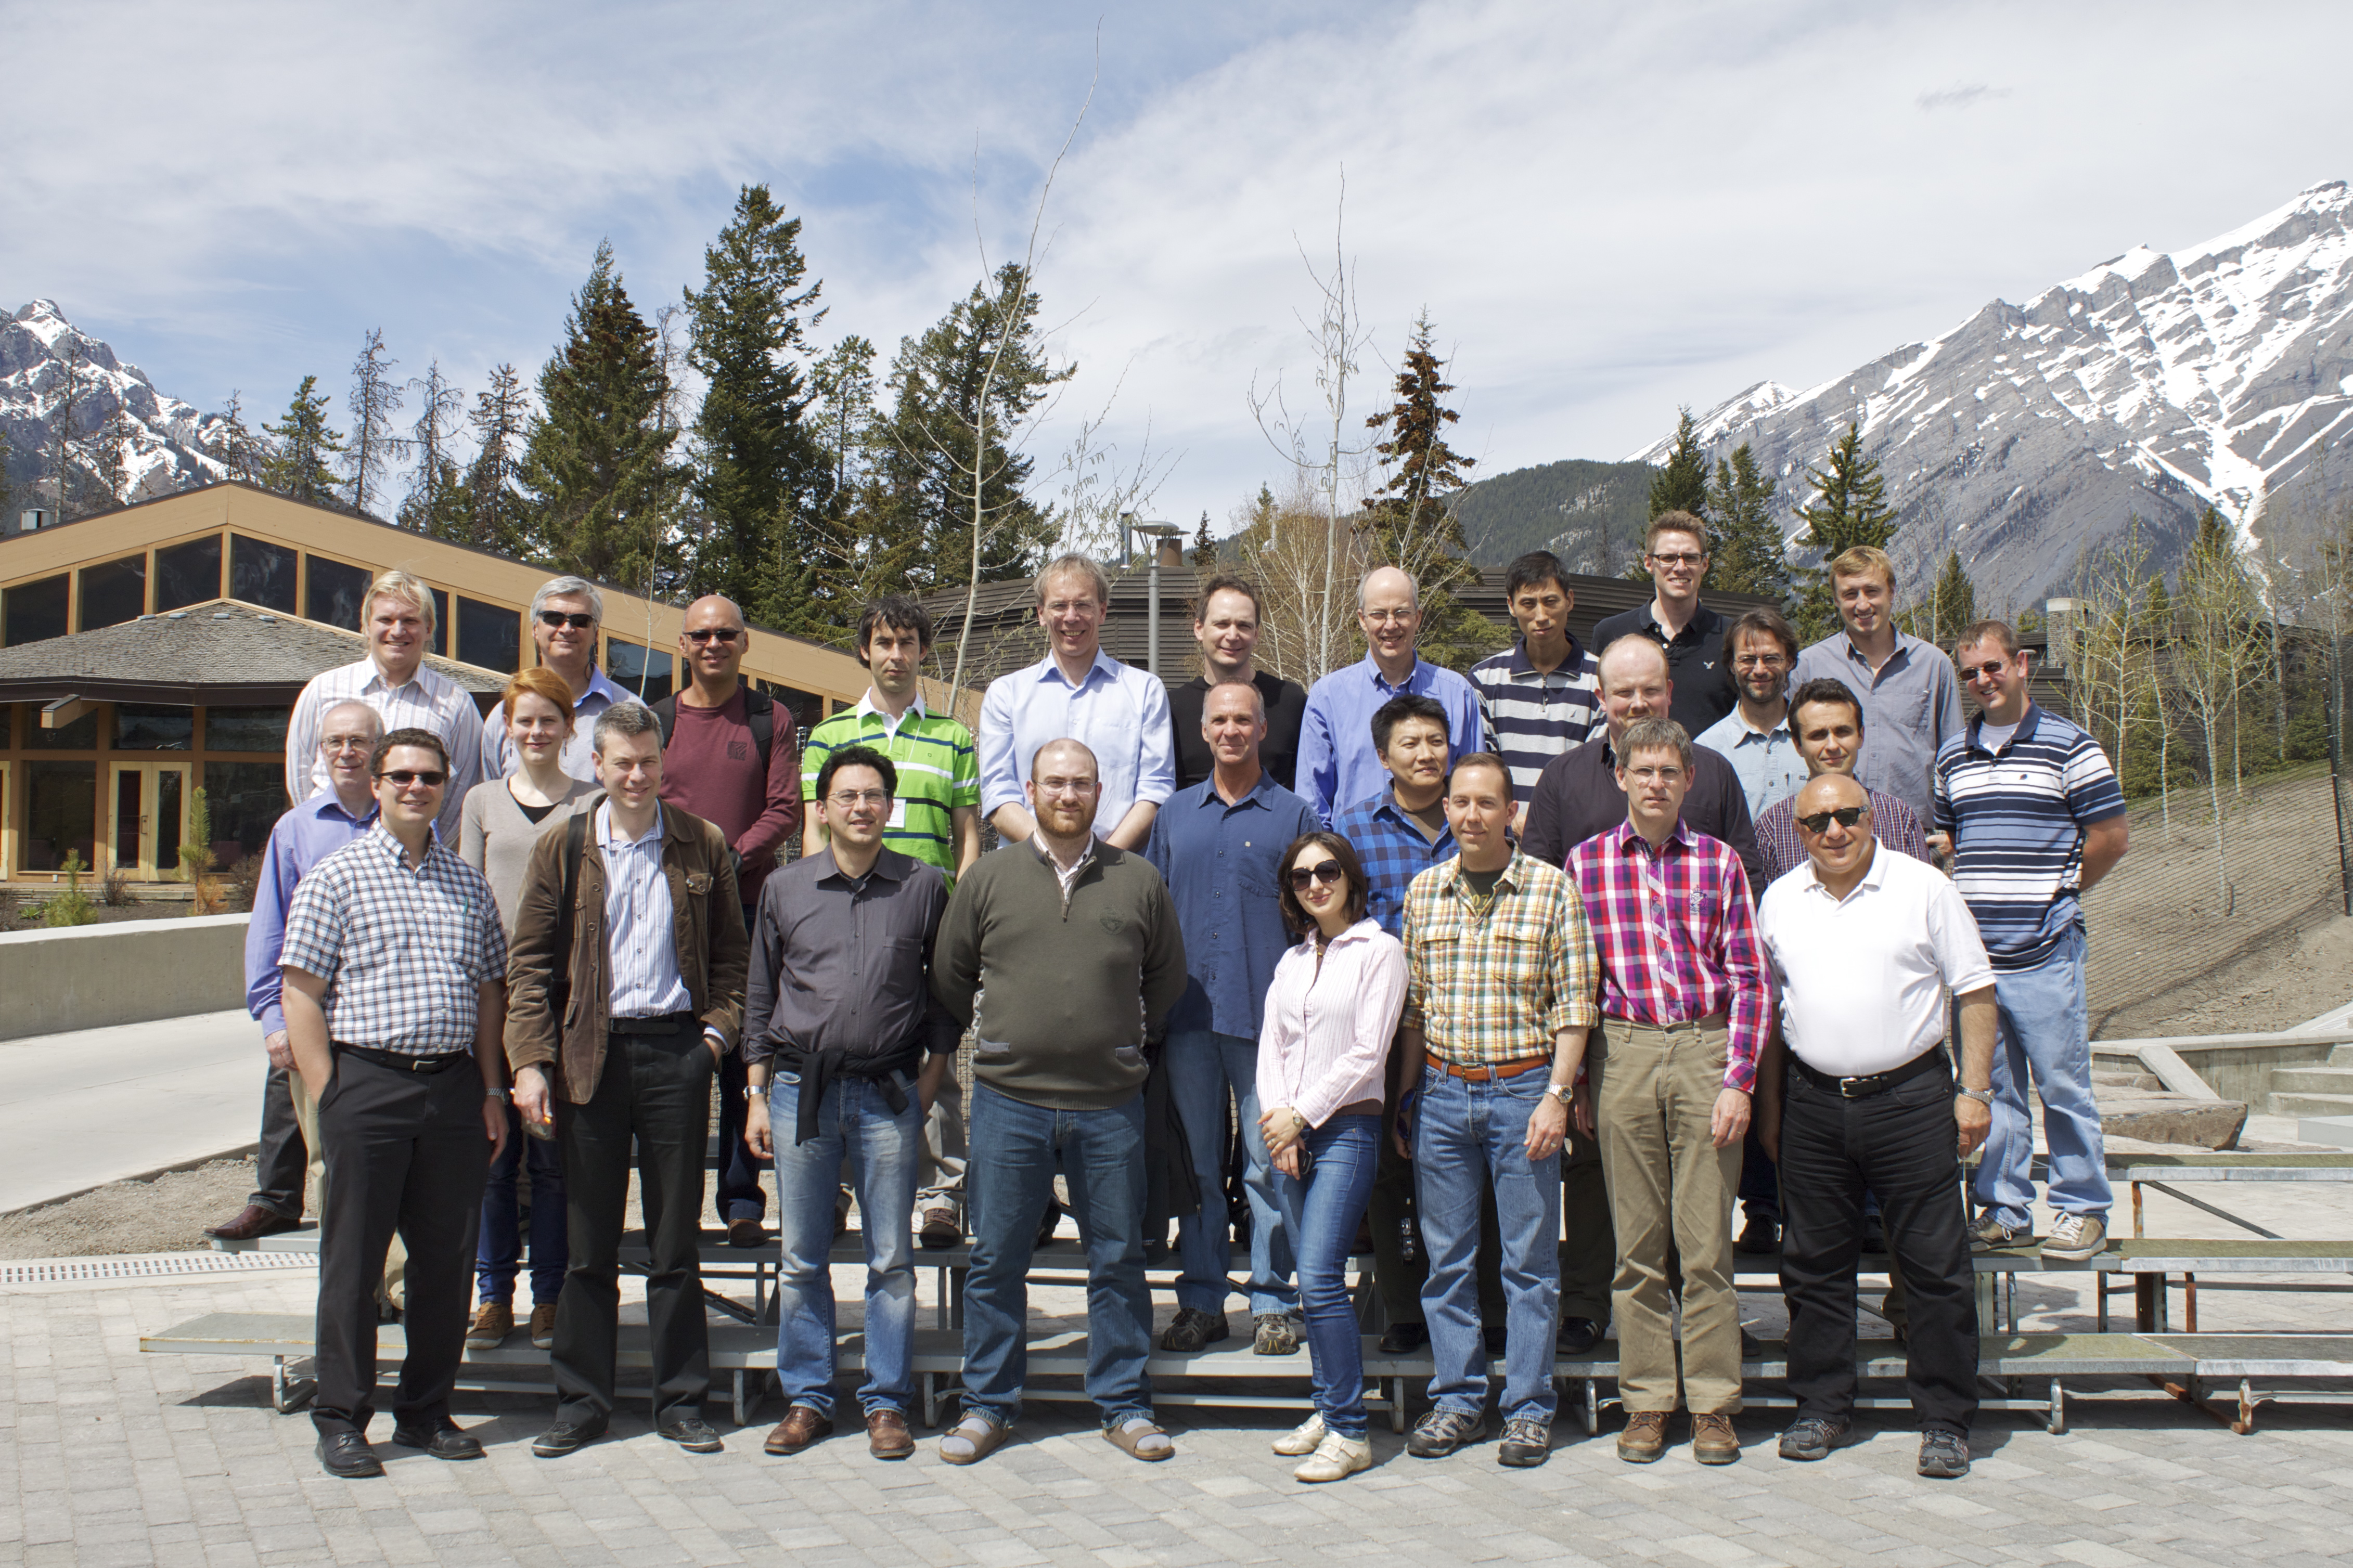 Held at the Banff International Research Station, May 2012